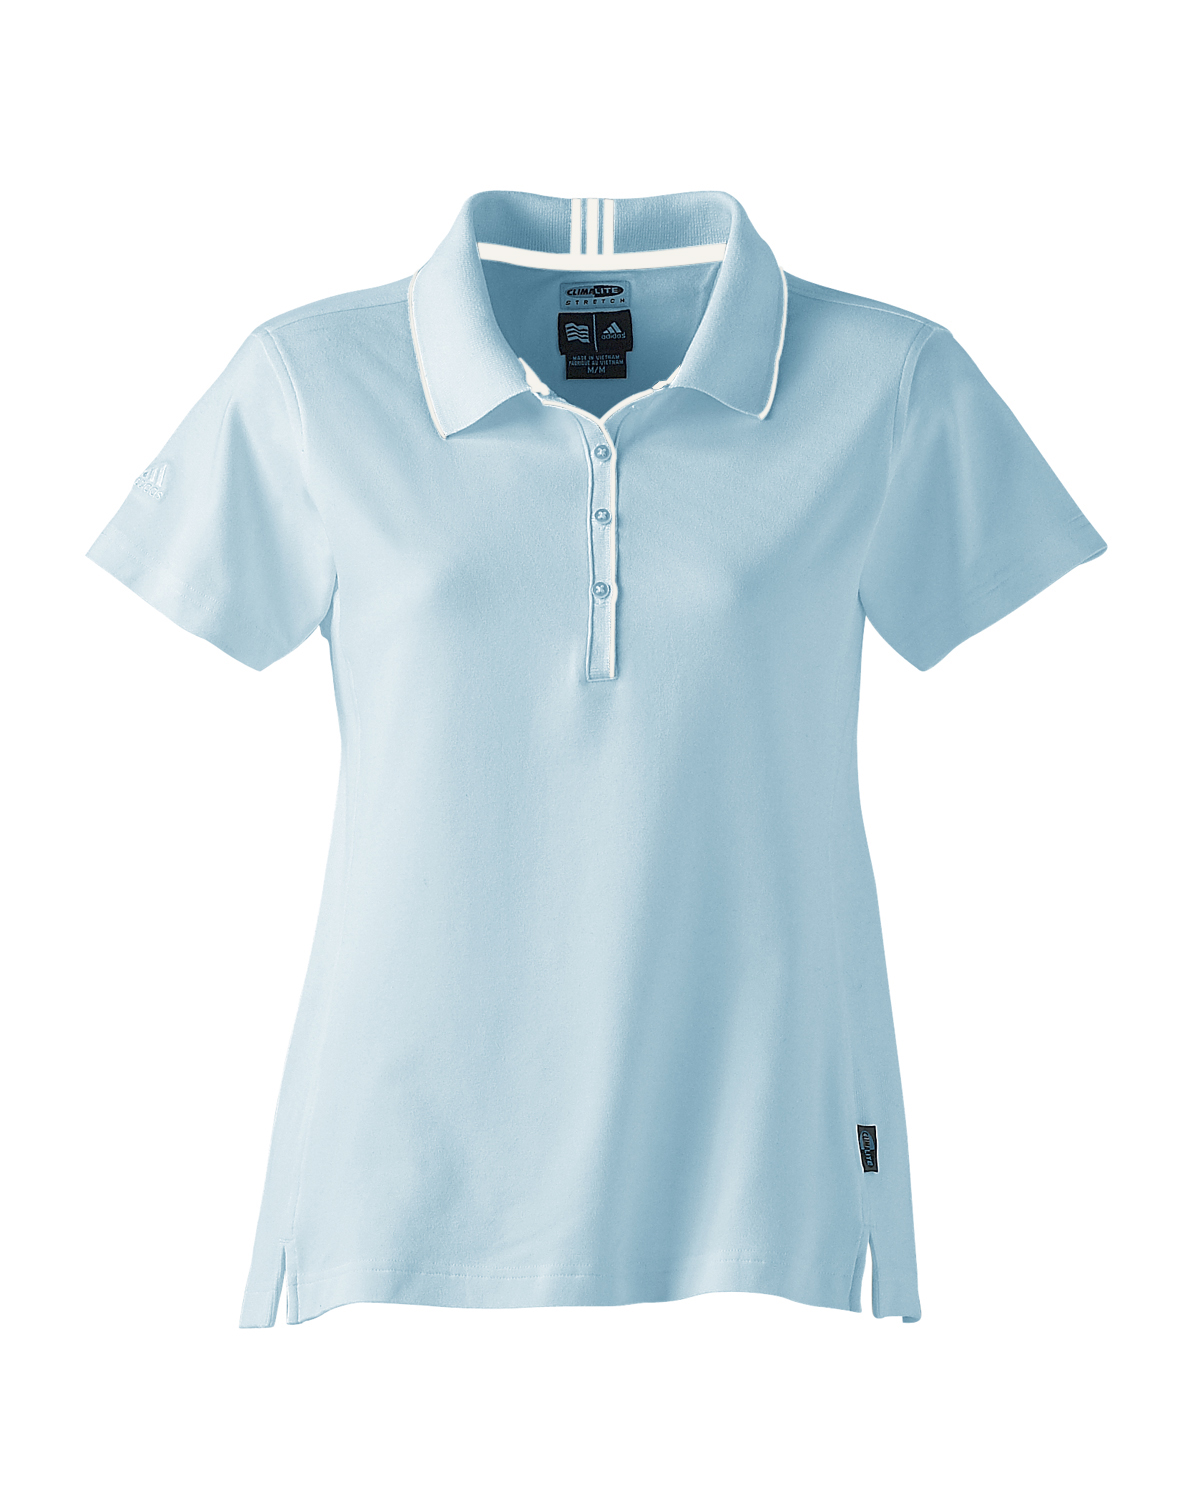 Popular TaylorMade  Adidas Golf Apparel TW6186F6 Adidas Womens Adistar